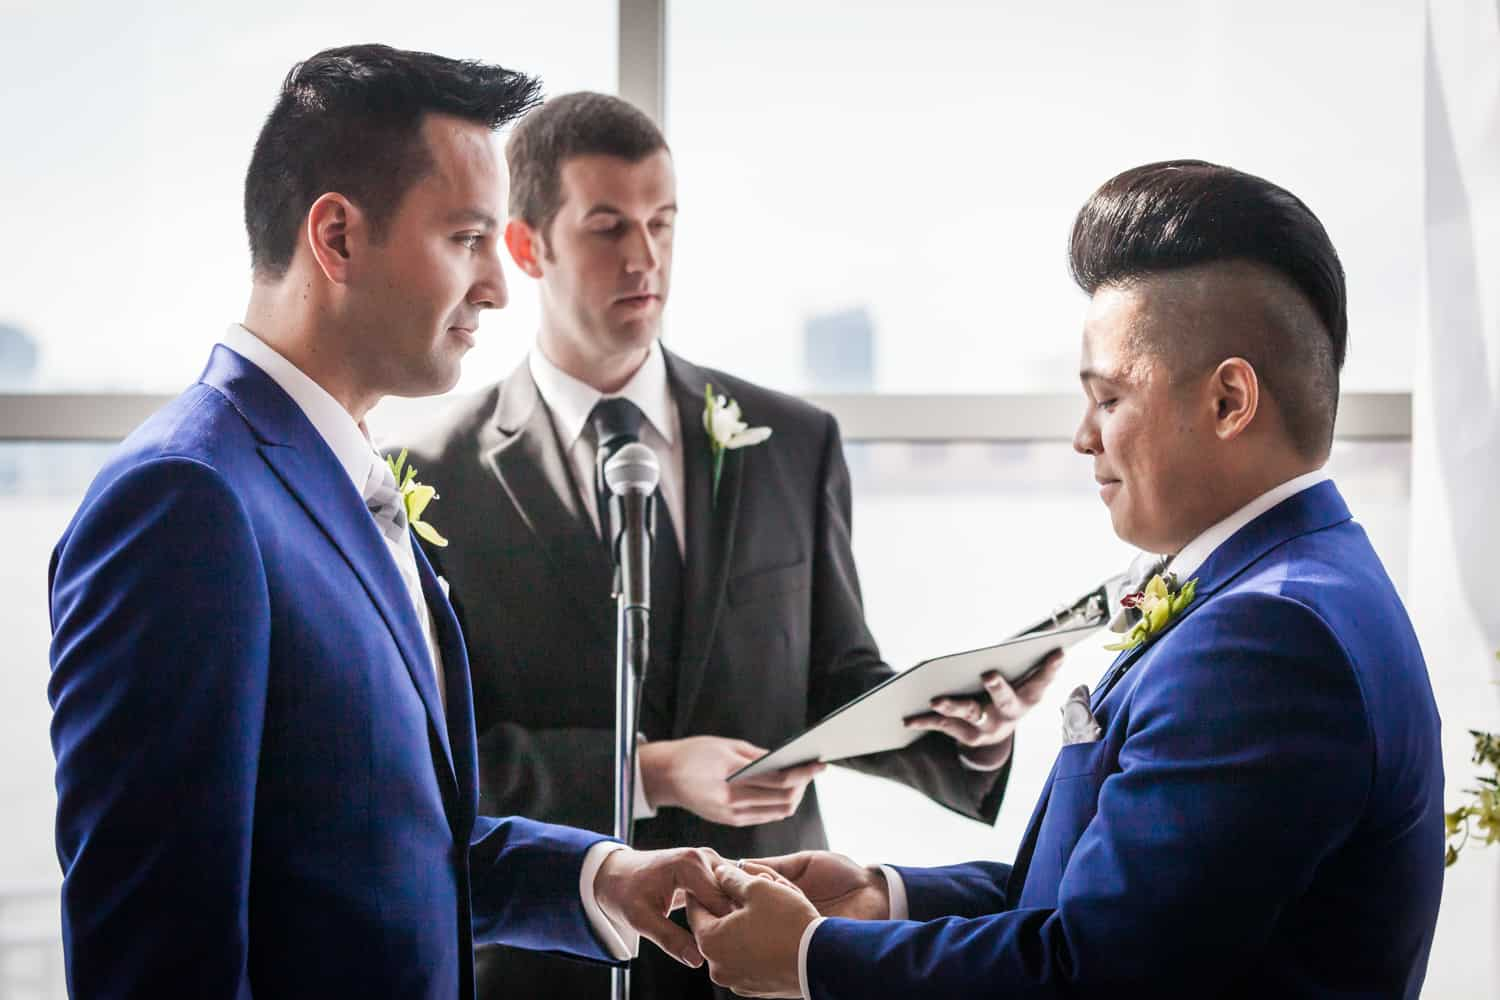 Two grooms exchanging rings at a Lighthouse at Chelsea Piers wedding